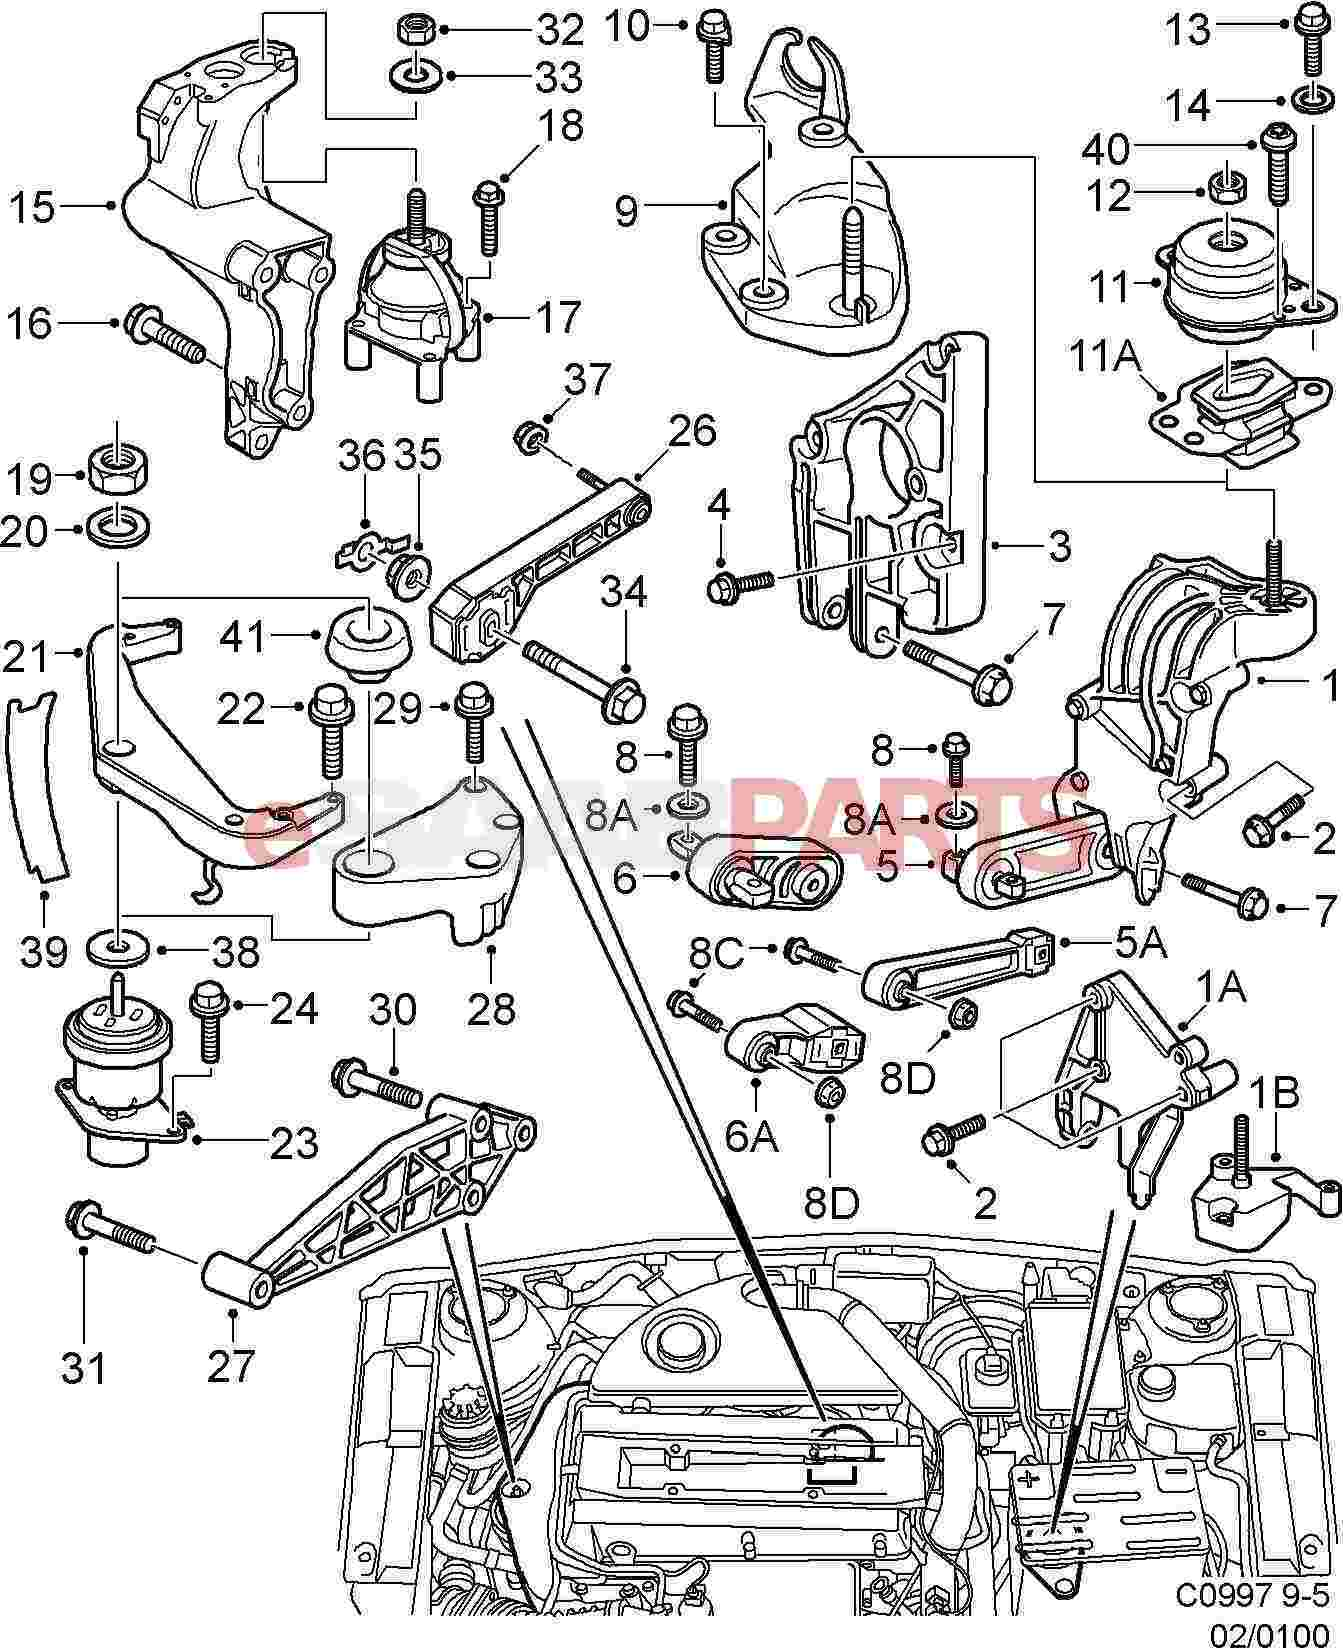 Saab 9000 Parts Diagram Great Installation Of Wiring 1999 9 3 Engine Todays Rh 14 15 1813weddingbarn Com 2007